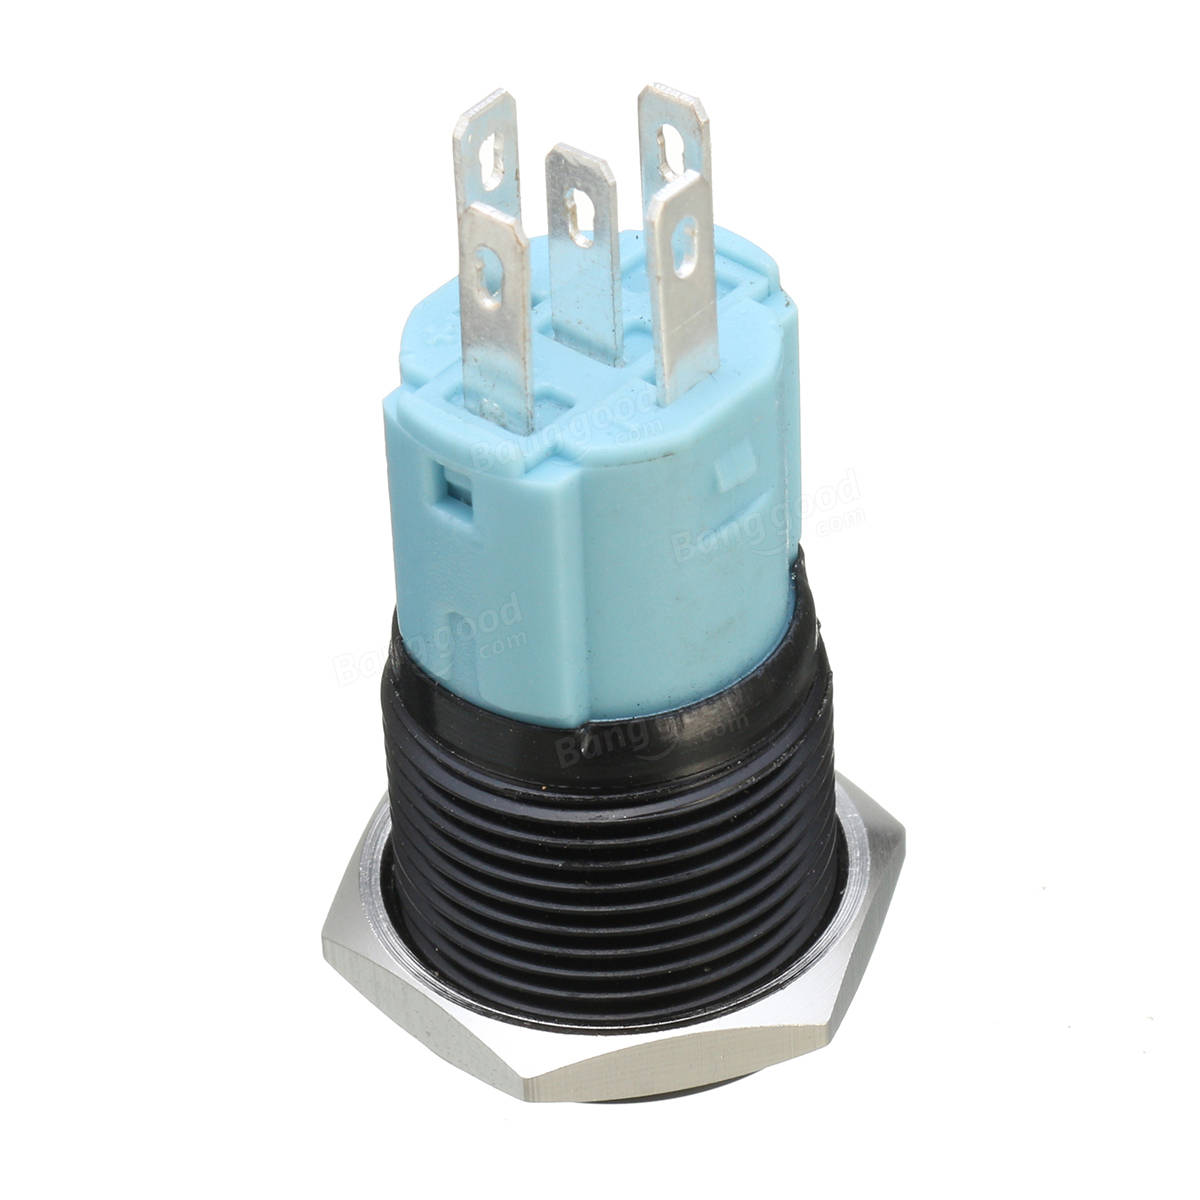 5 Pin 16mm 12V LED Light Stainless Steel Push Button Momentary Switch